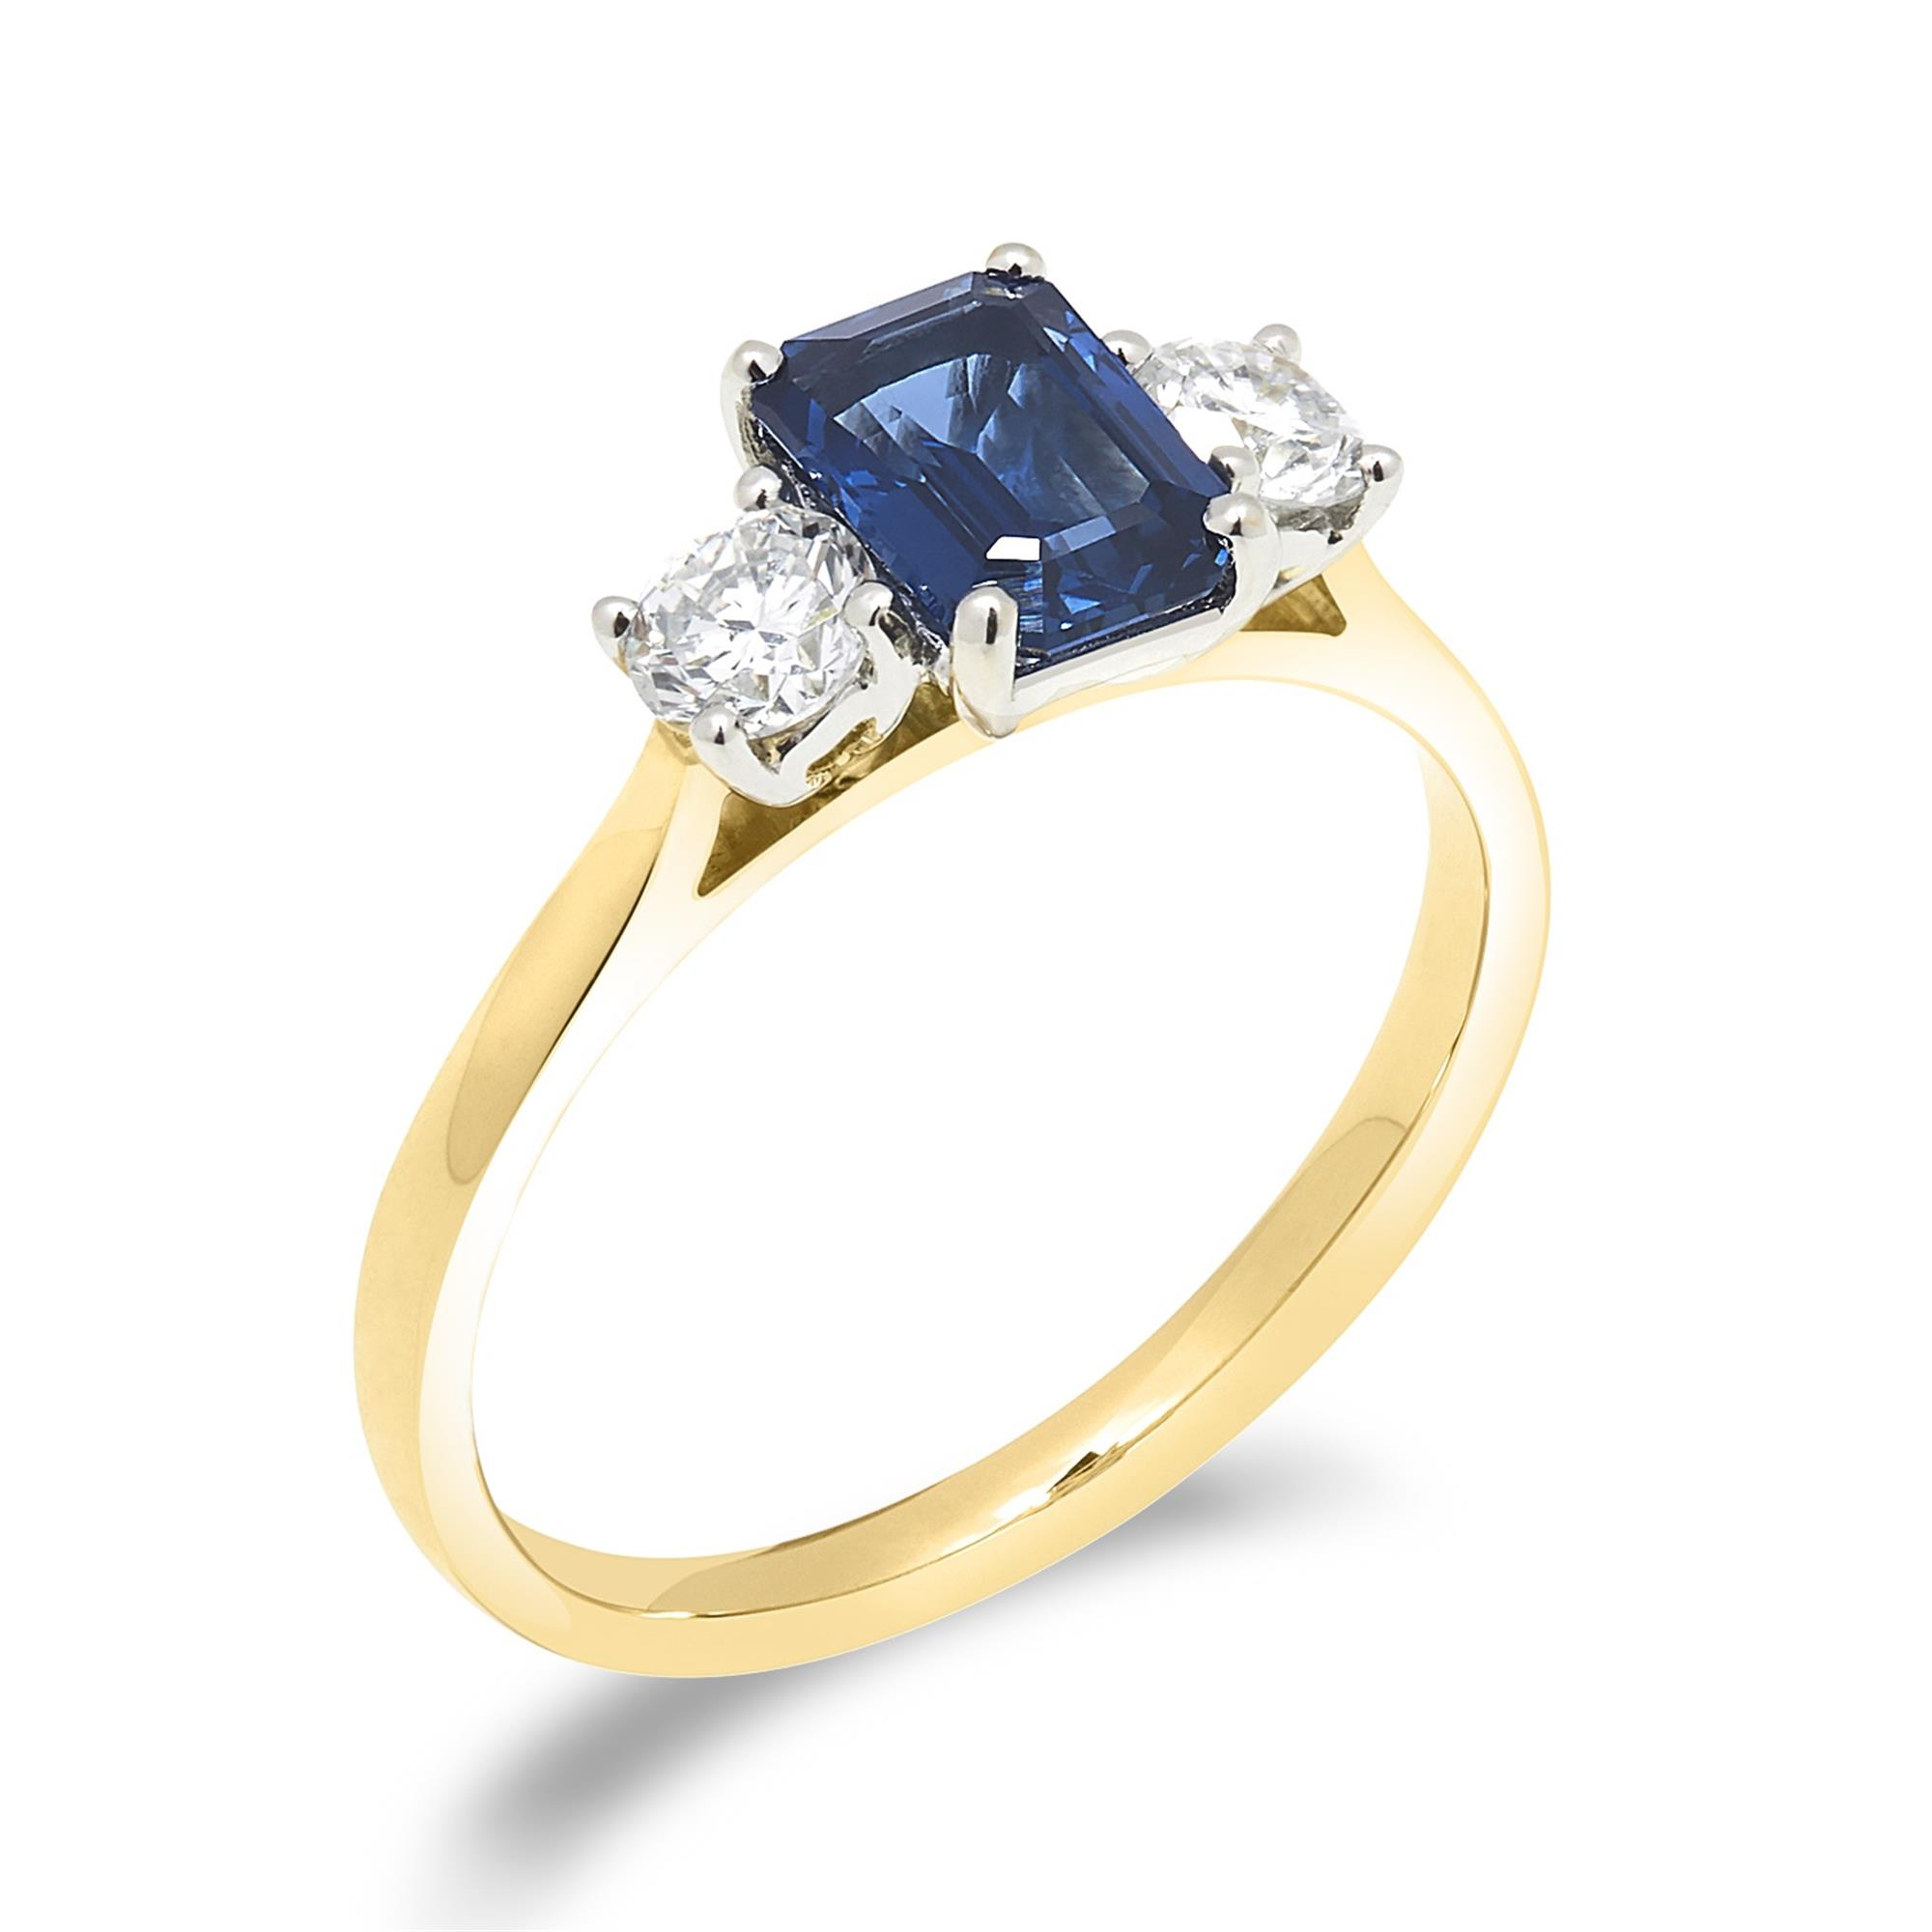 yellow gold claw ring sapphire emerald cut sapphire gemstone ring Blue sapphire ring